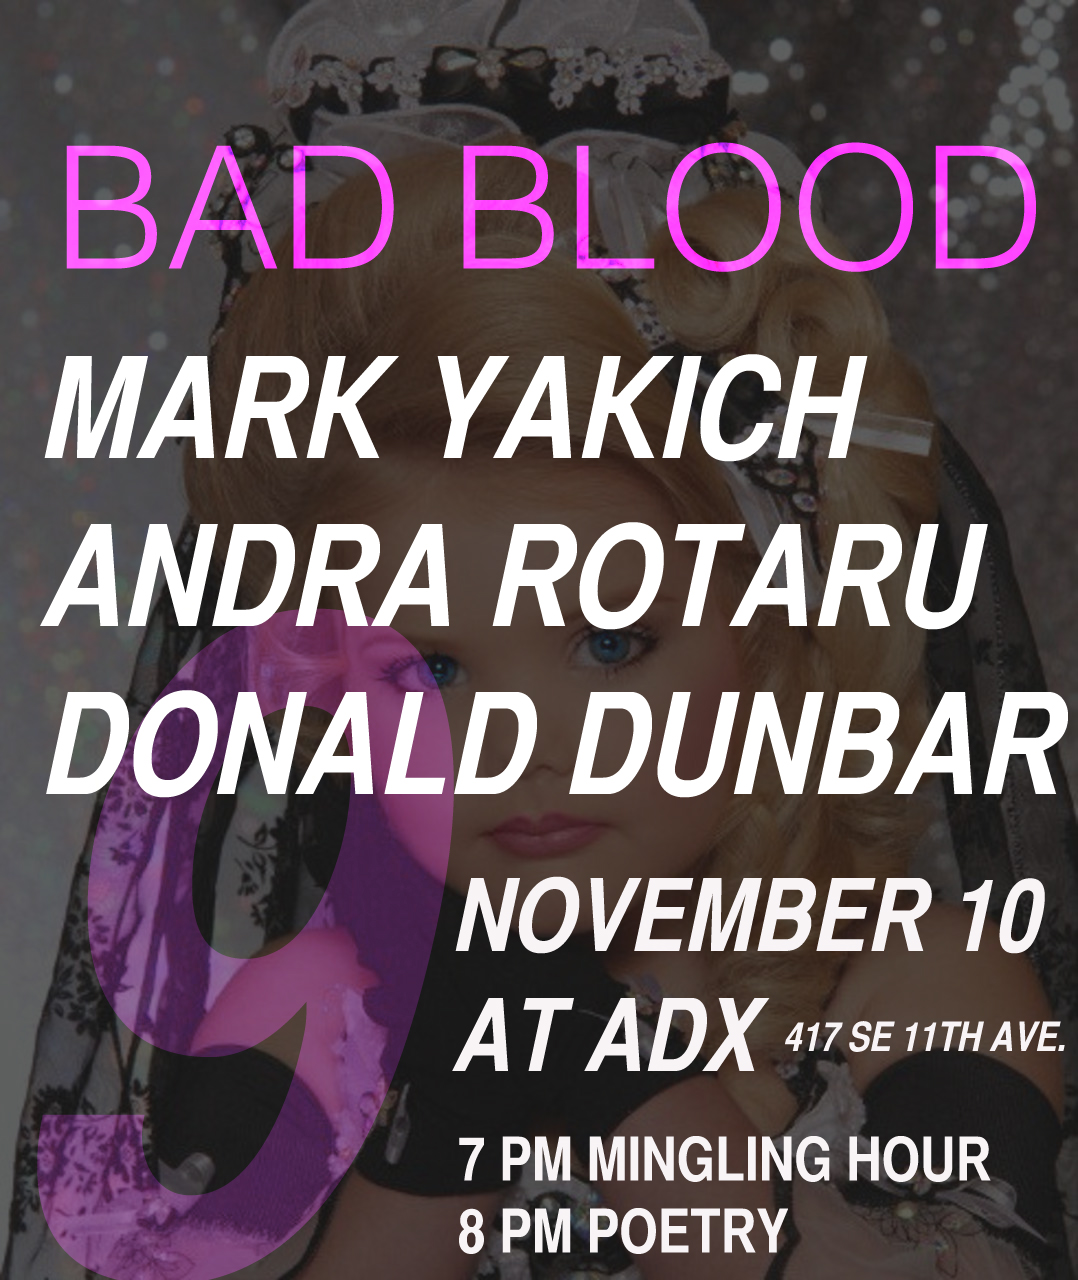 Keeping  it  bloody. Mark Yakich. Andra Rotaru. Donald Dunbar. Next Thursday at  ADX .